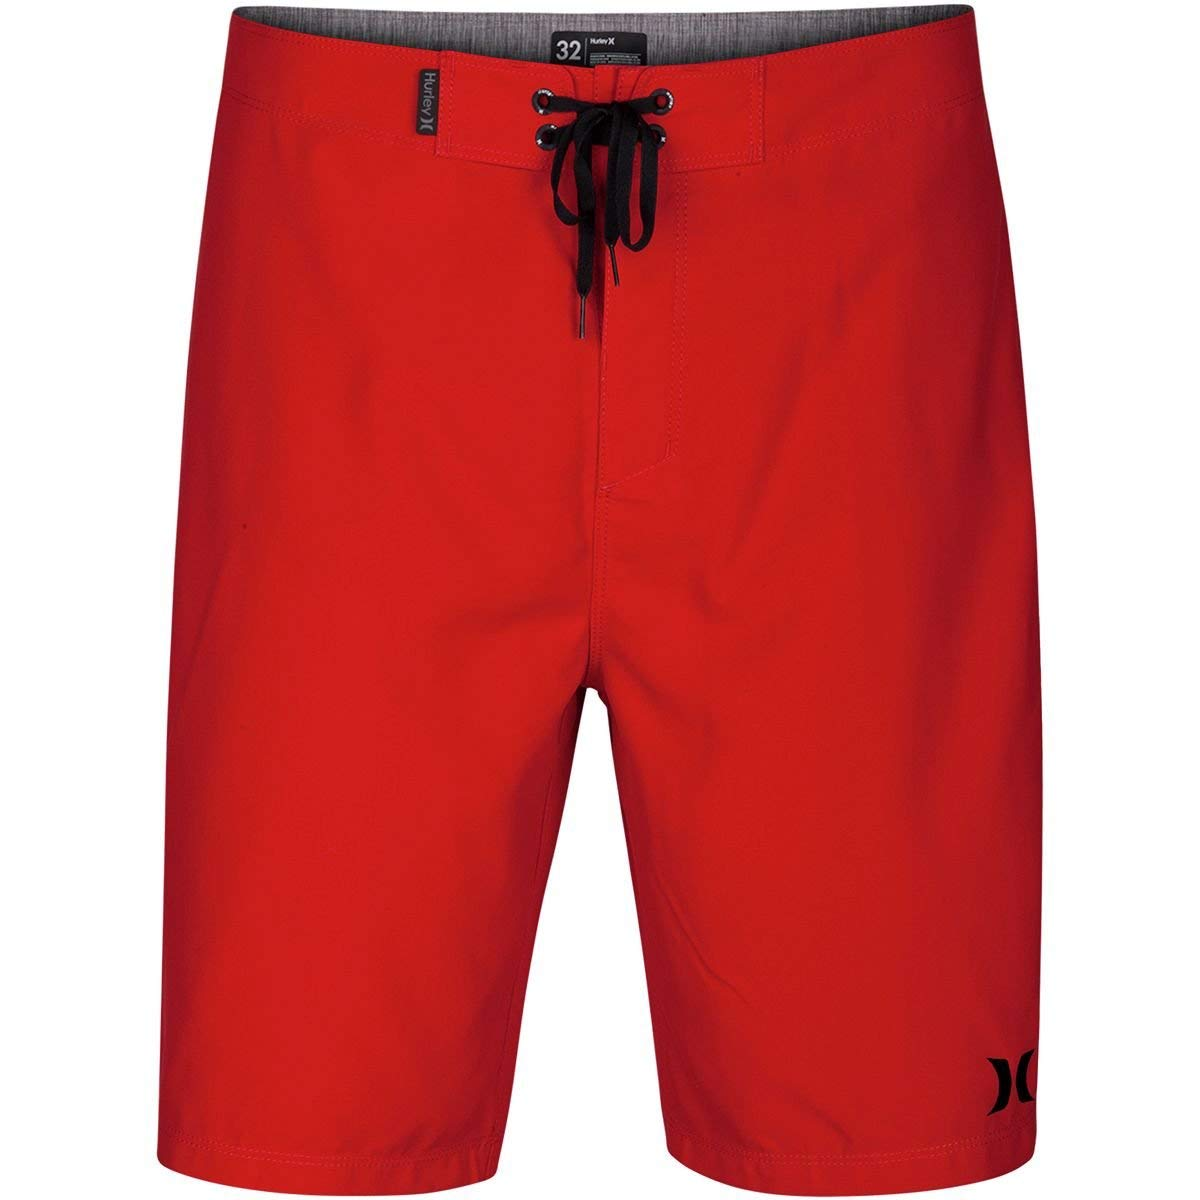 10a3d9da27 Cheap Red Boardshorts, find Red Boardshorts deals on line at Alibaba.com